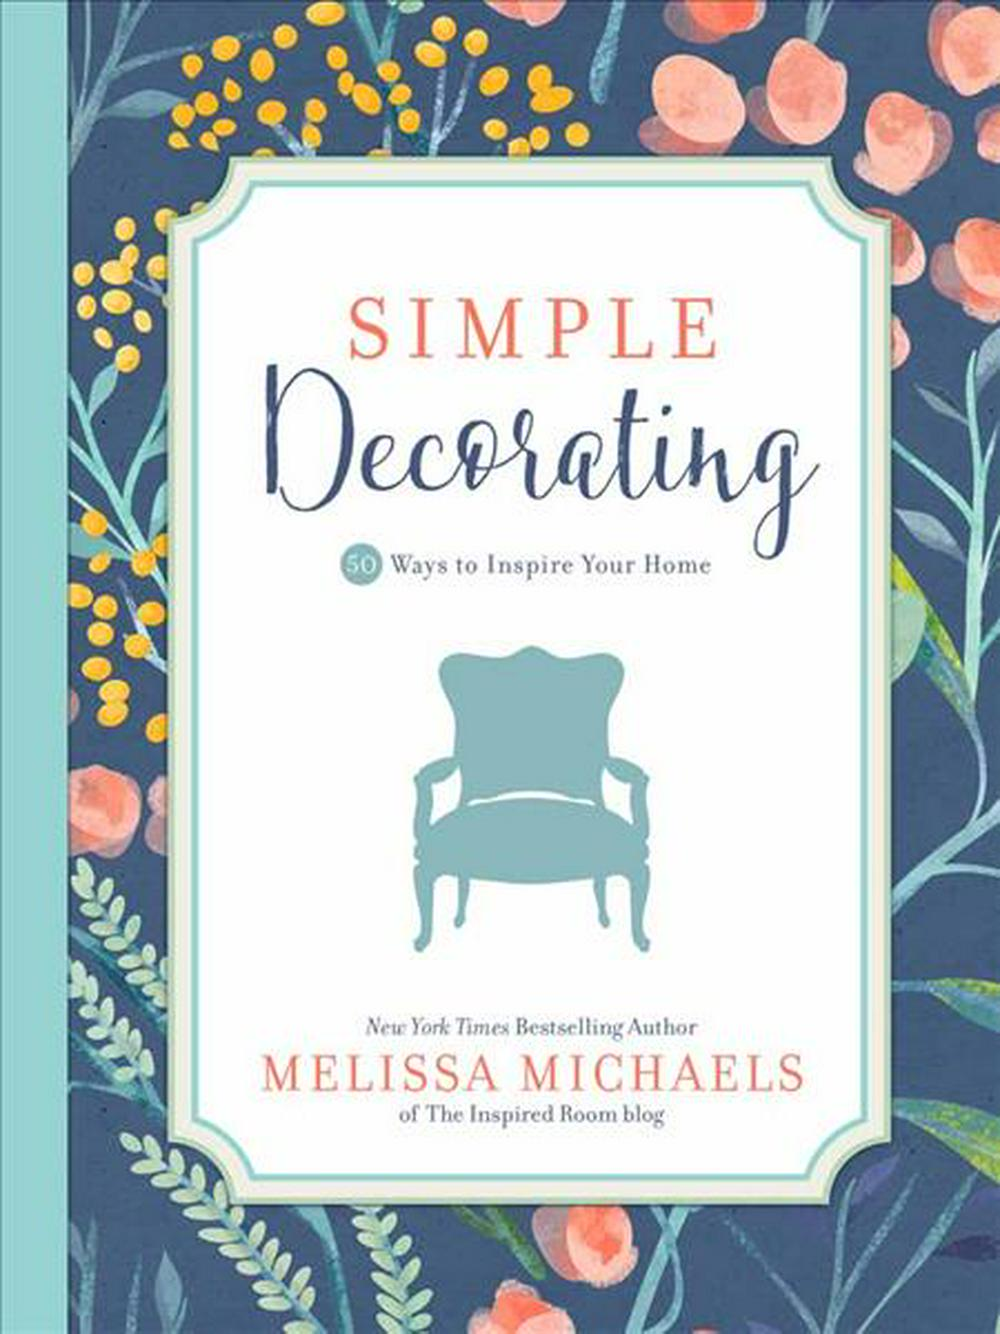 Simple Decorating by Melissa Michaels, ISBN: 9780736963114